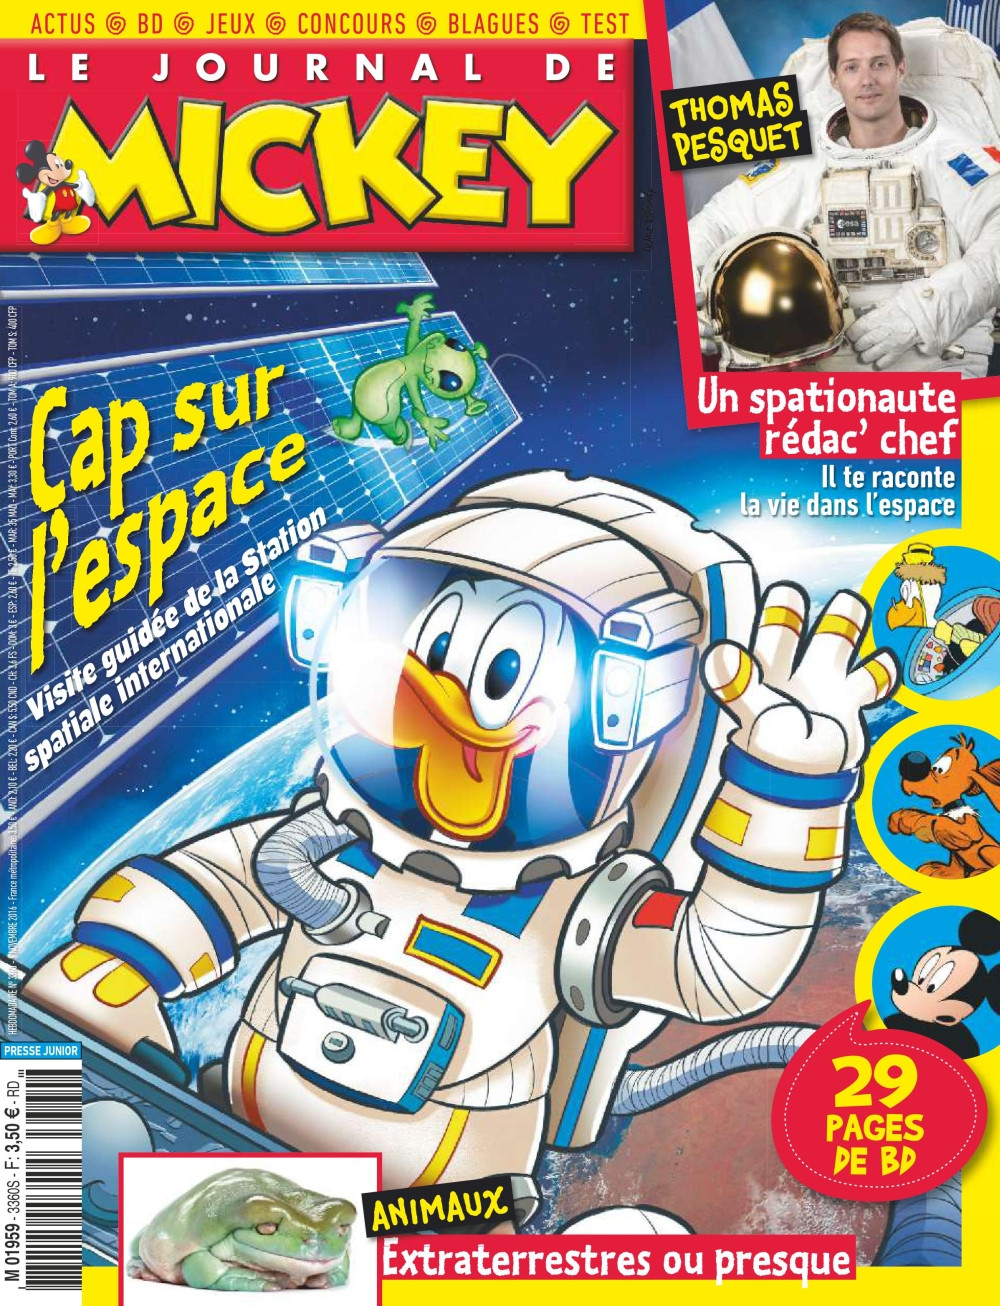 Le Journal de Mickey N°3360 - 09 Novembre 2016